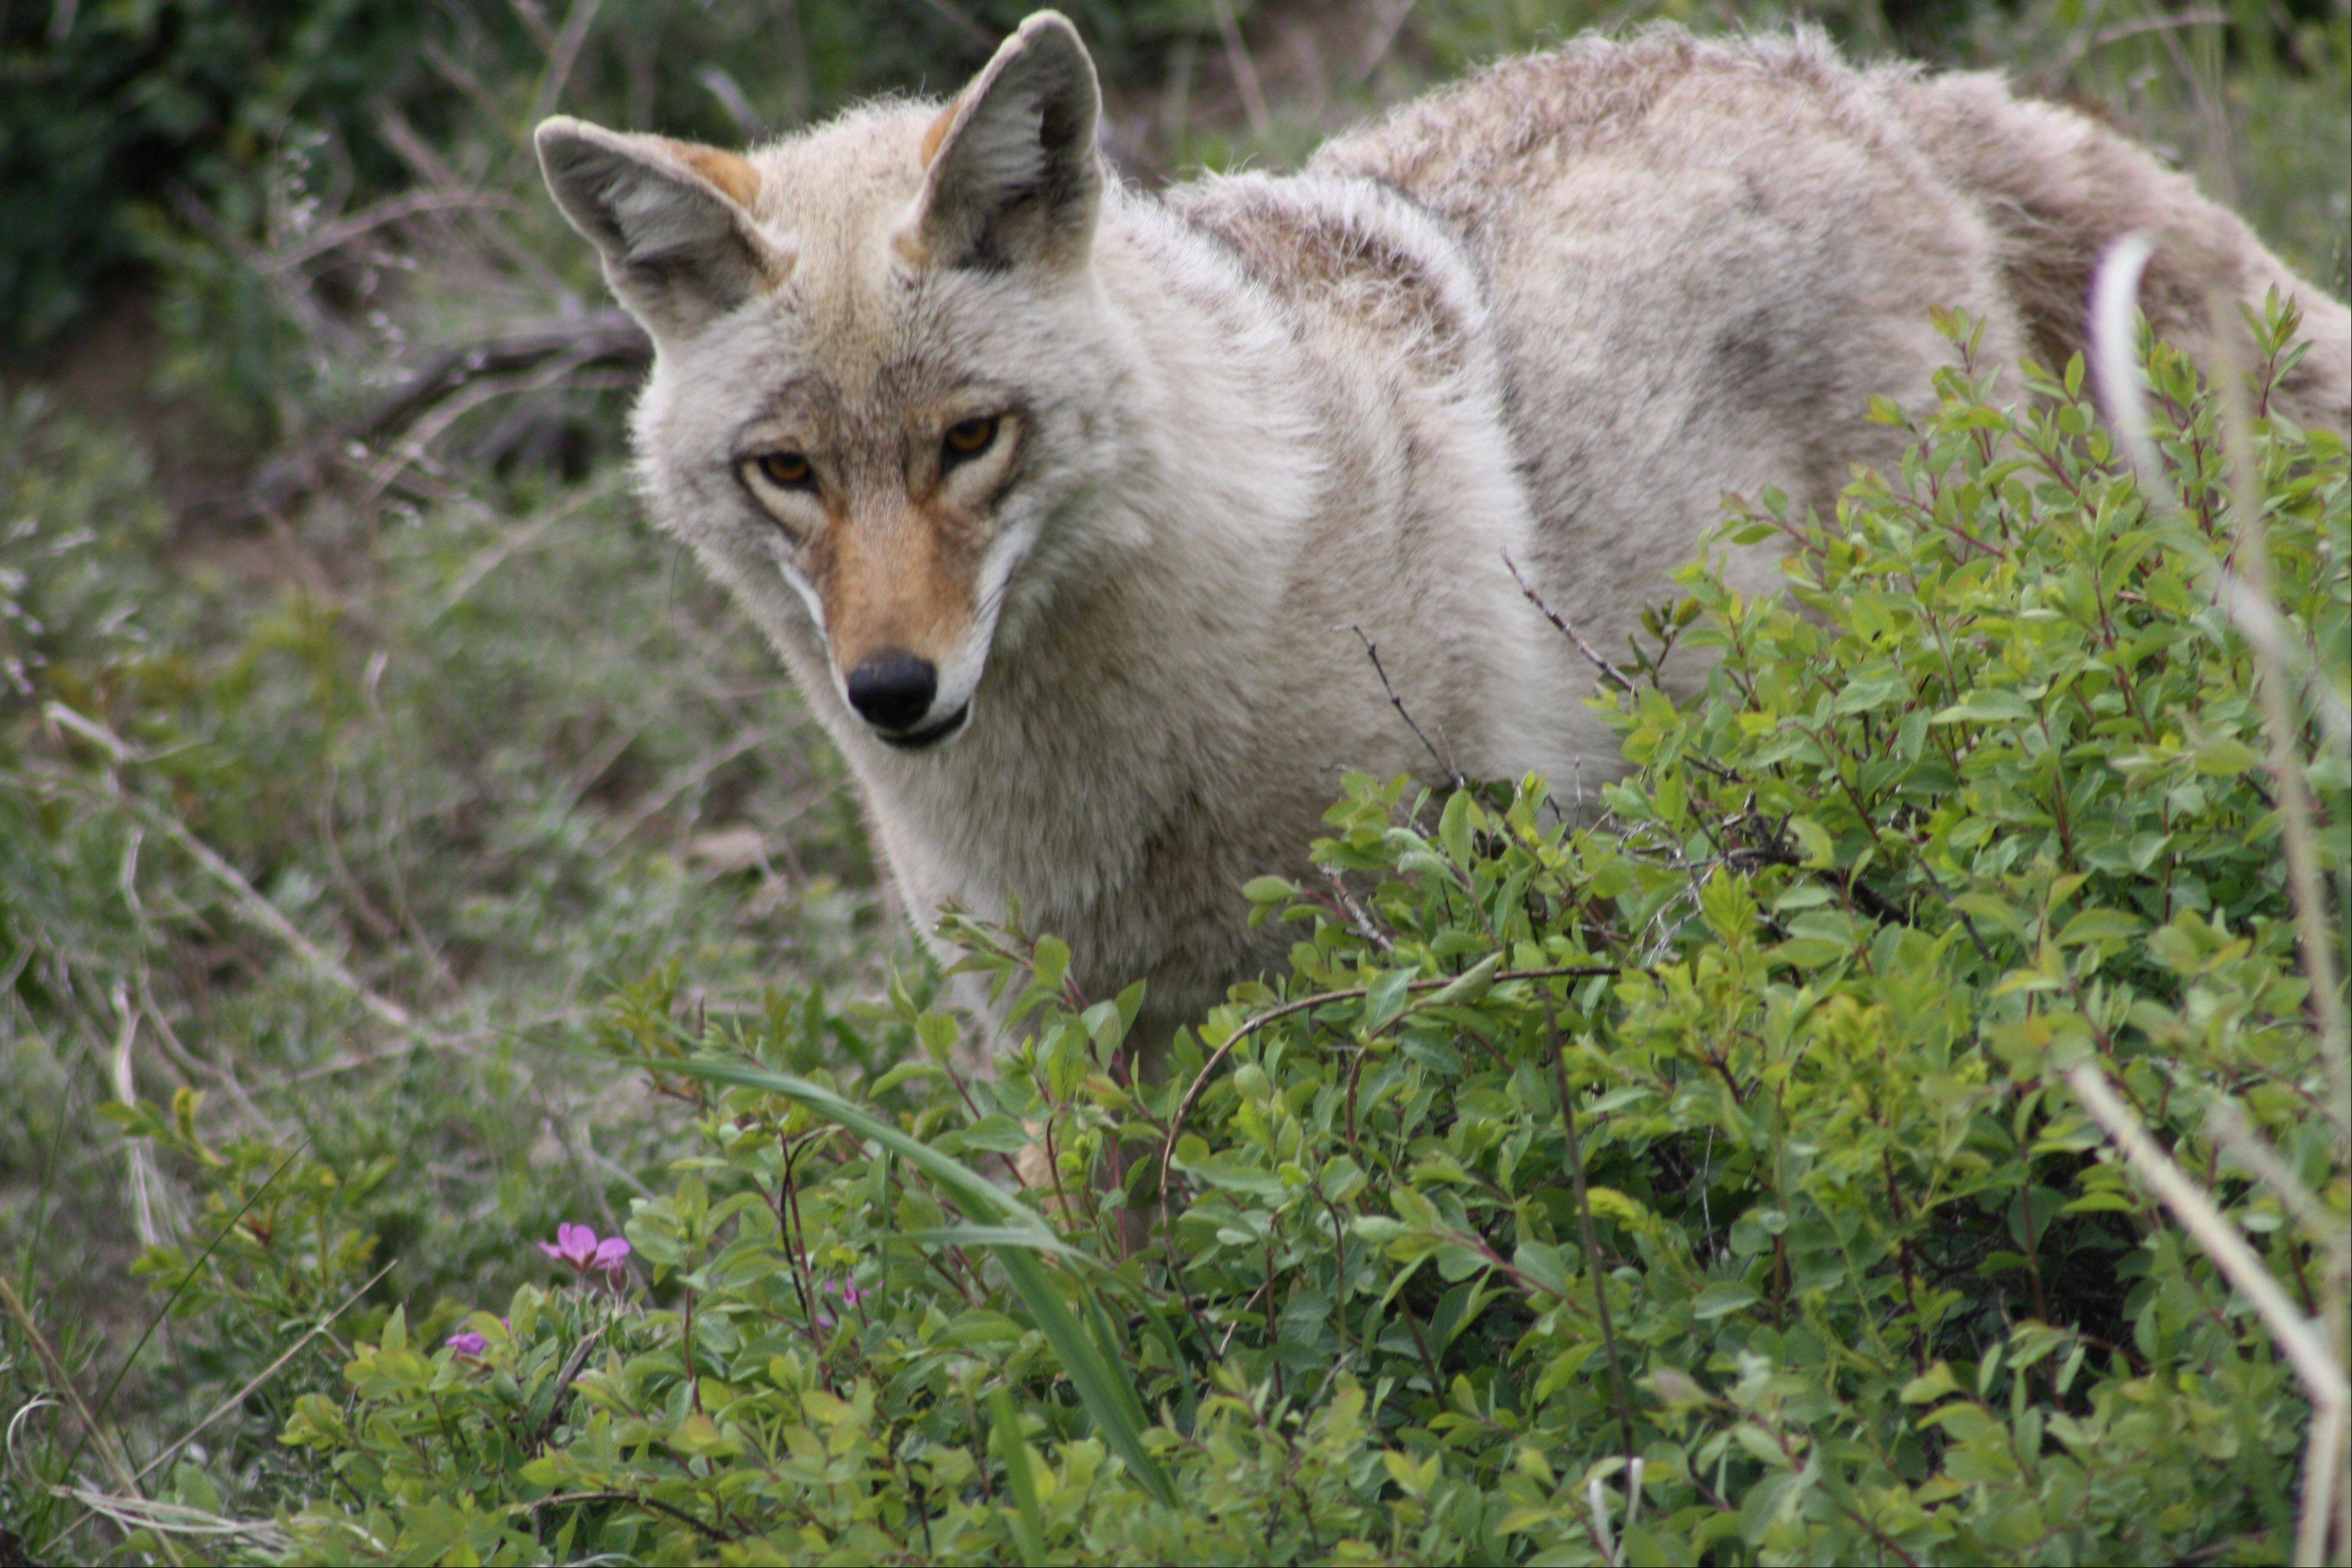 Whom should you call if you spot a coyote?